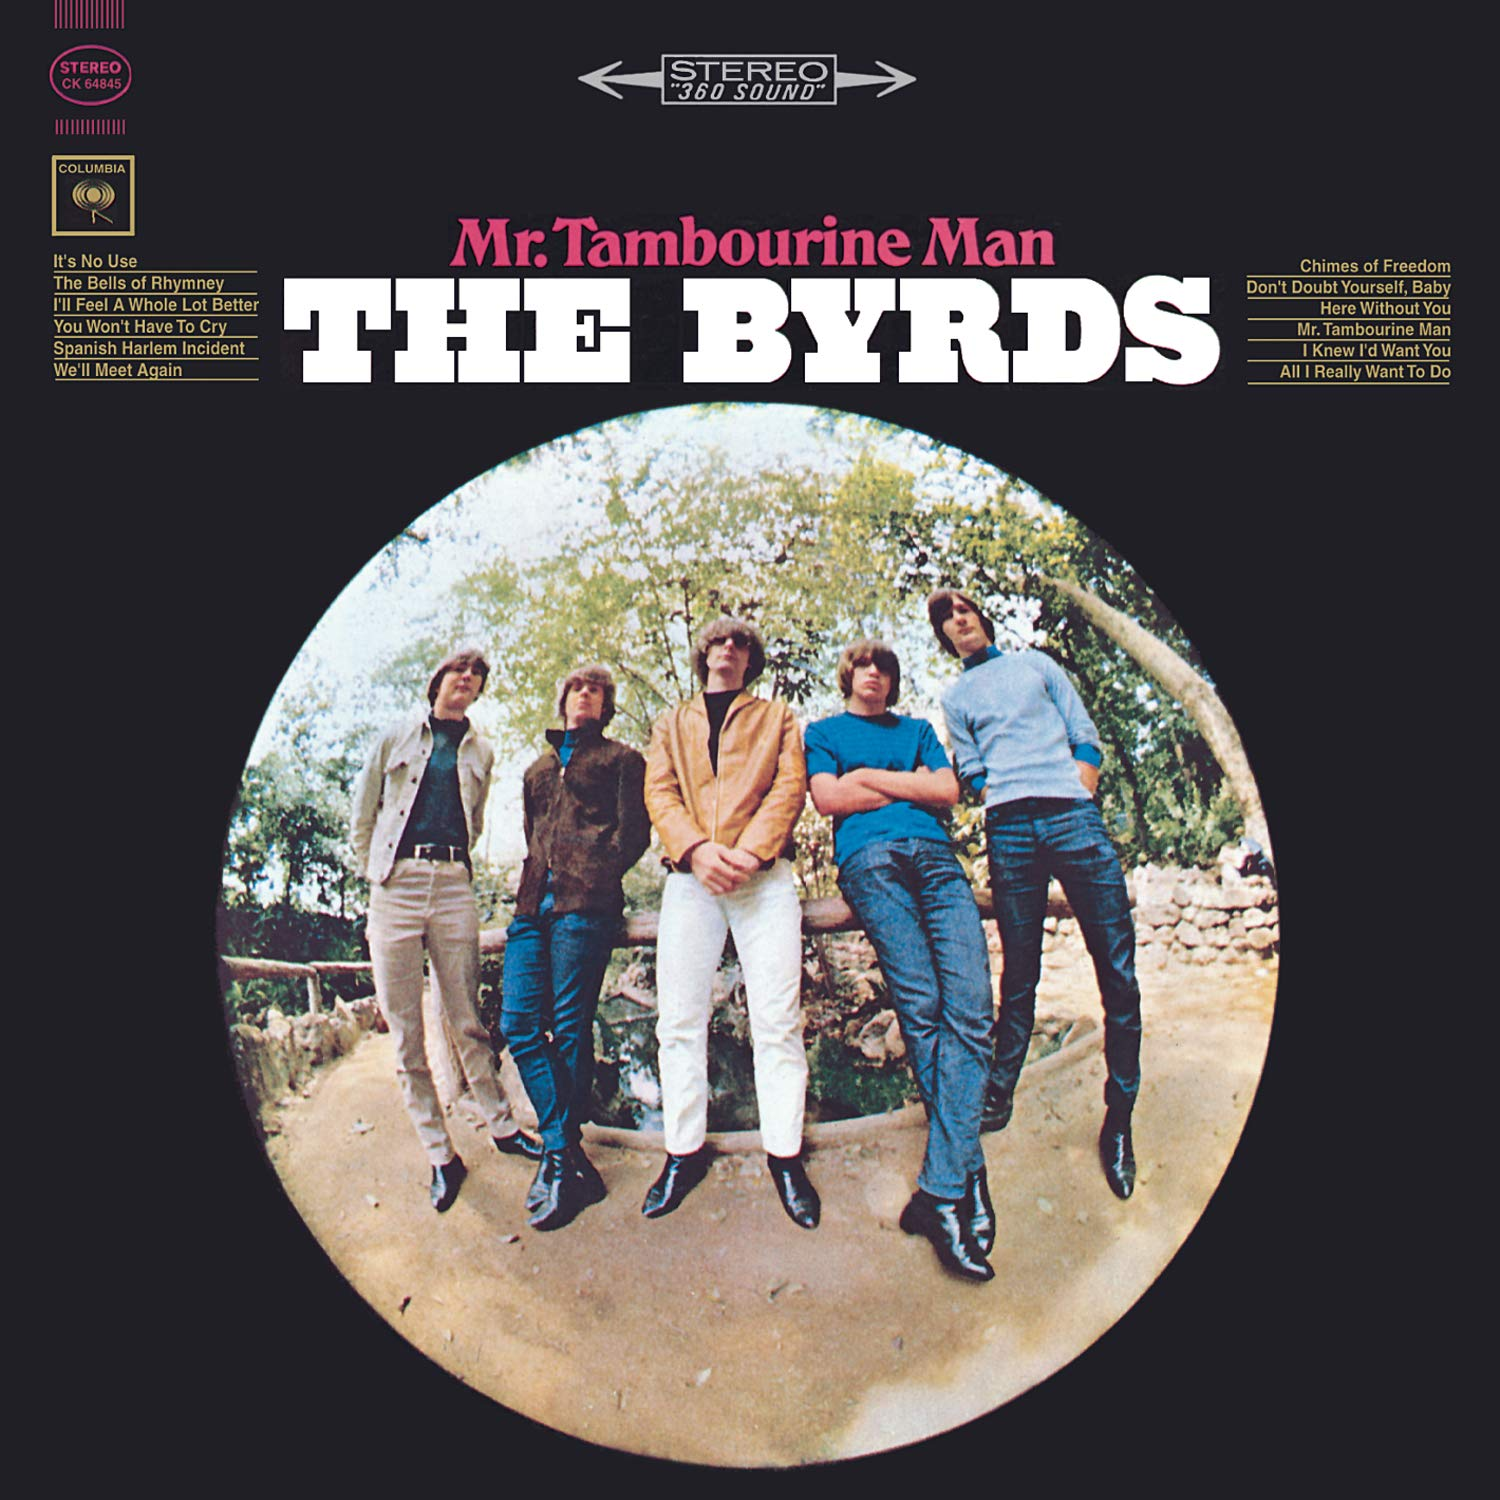 The Byrds donde Mr Tambourine